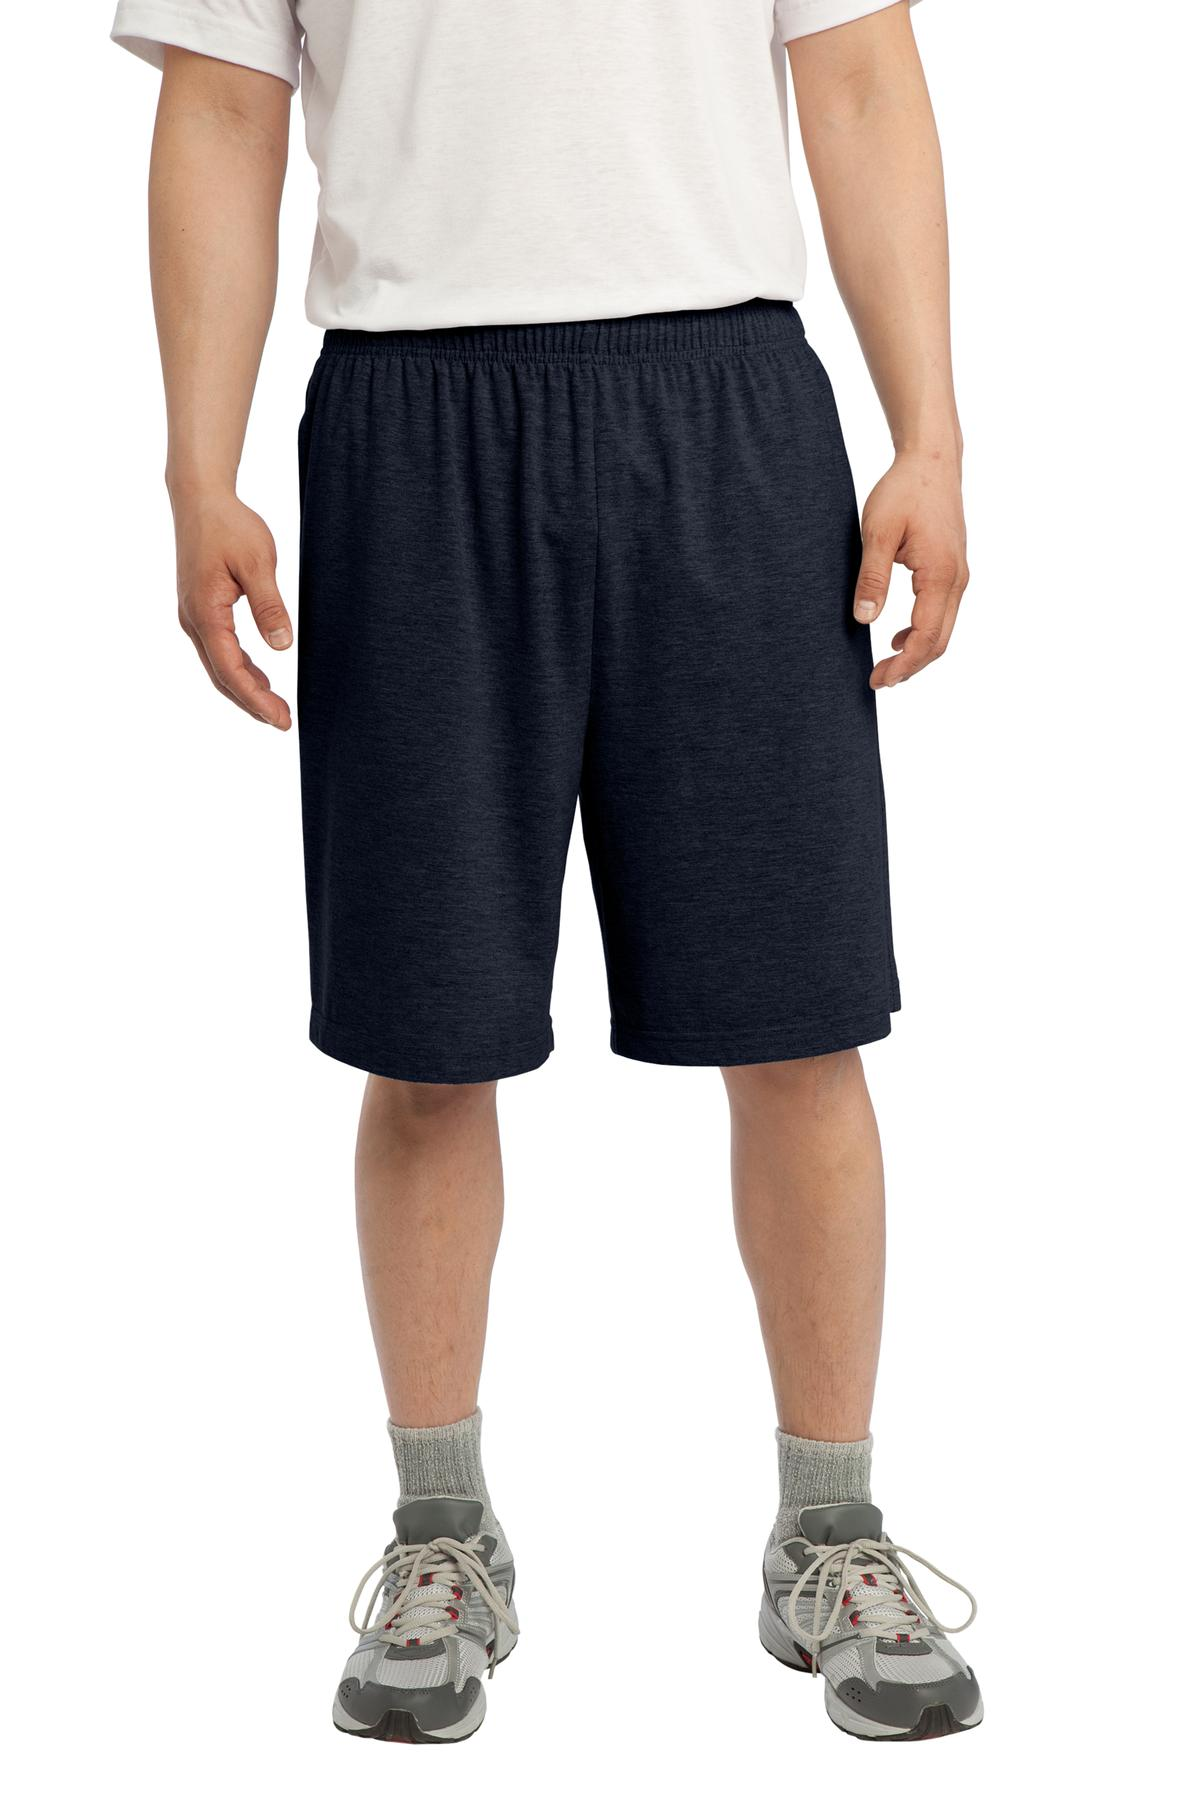 Sport-Tek ®  Jersey Knit Short with Pockets. ST310 - True Navy